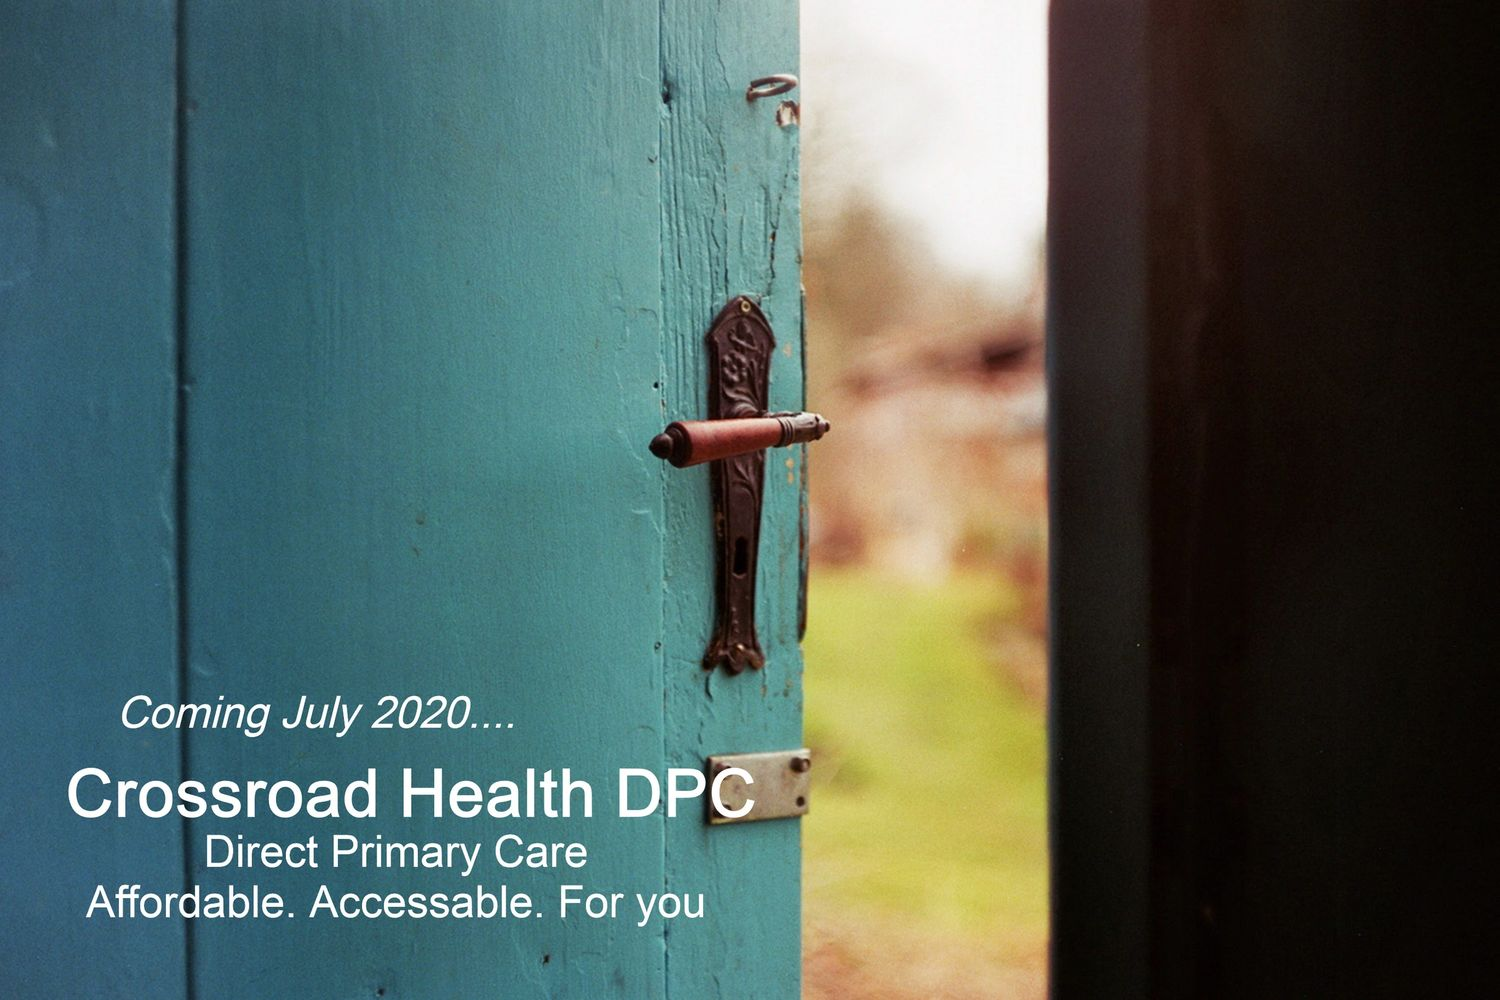 Opening door. Opportunity. Direct Primary Care Southaven, MS Photo by Jan Tinneberg on Unsplash